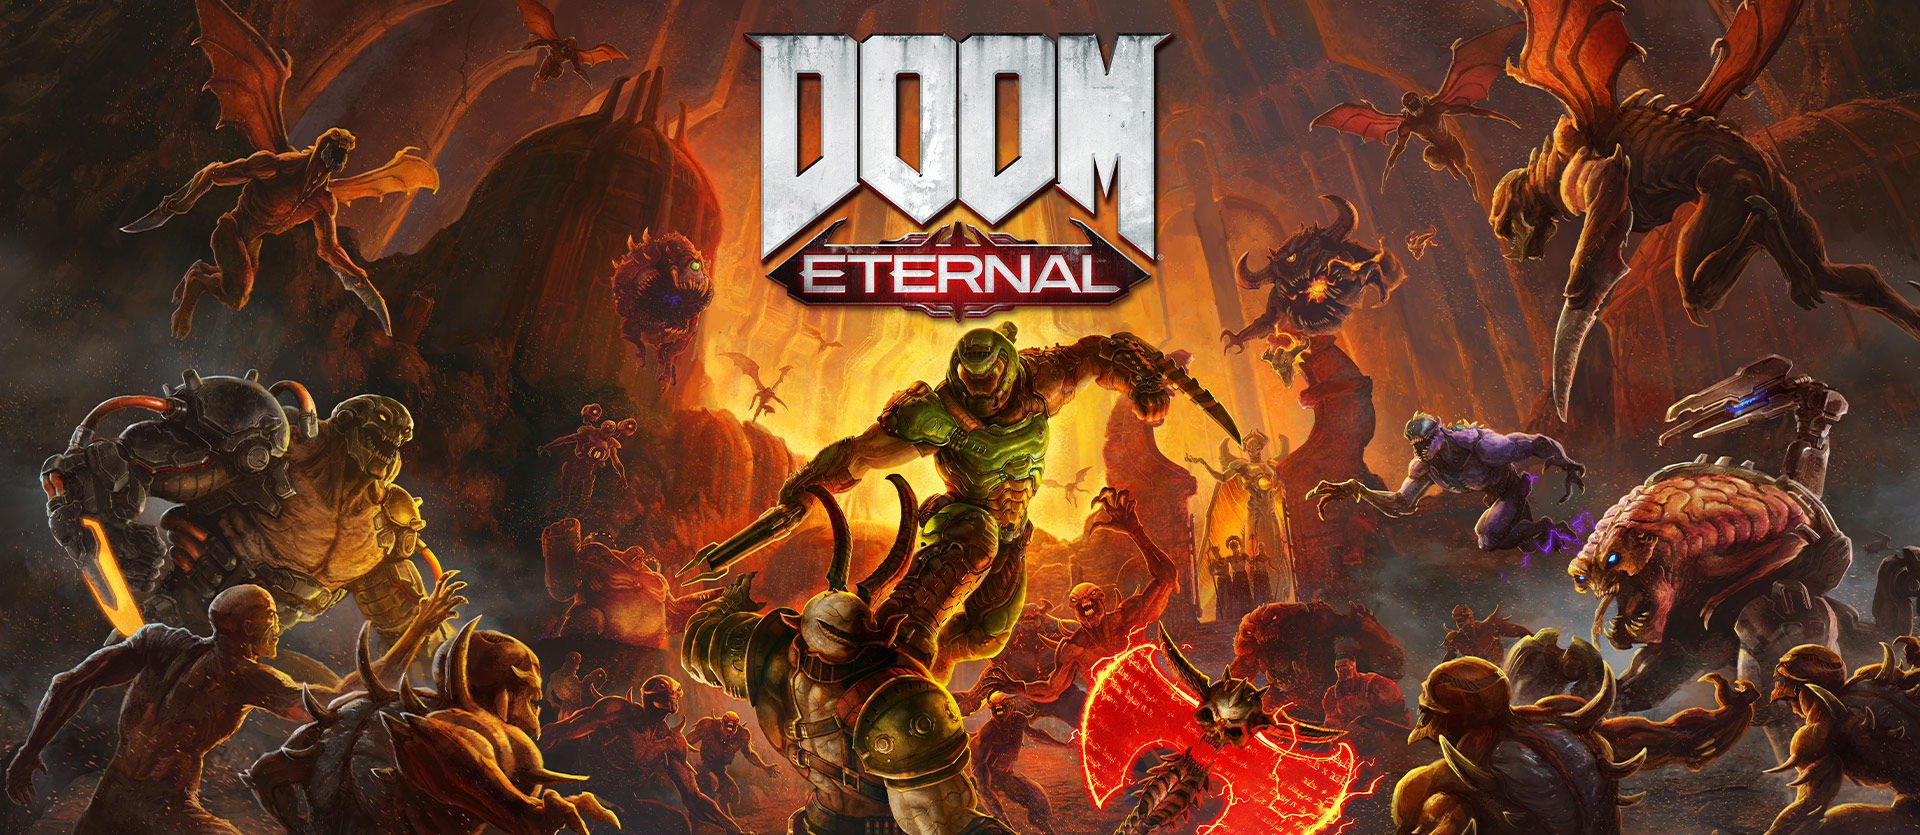 DOOM Eternal, personaje luchando contra una horda de monstruos